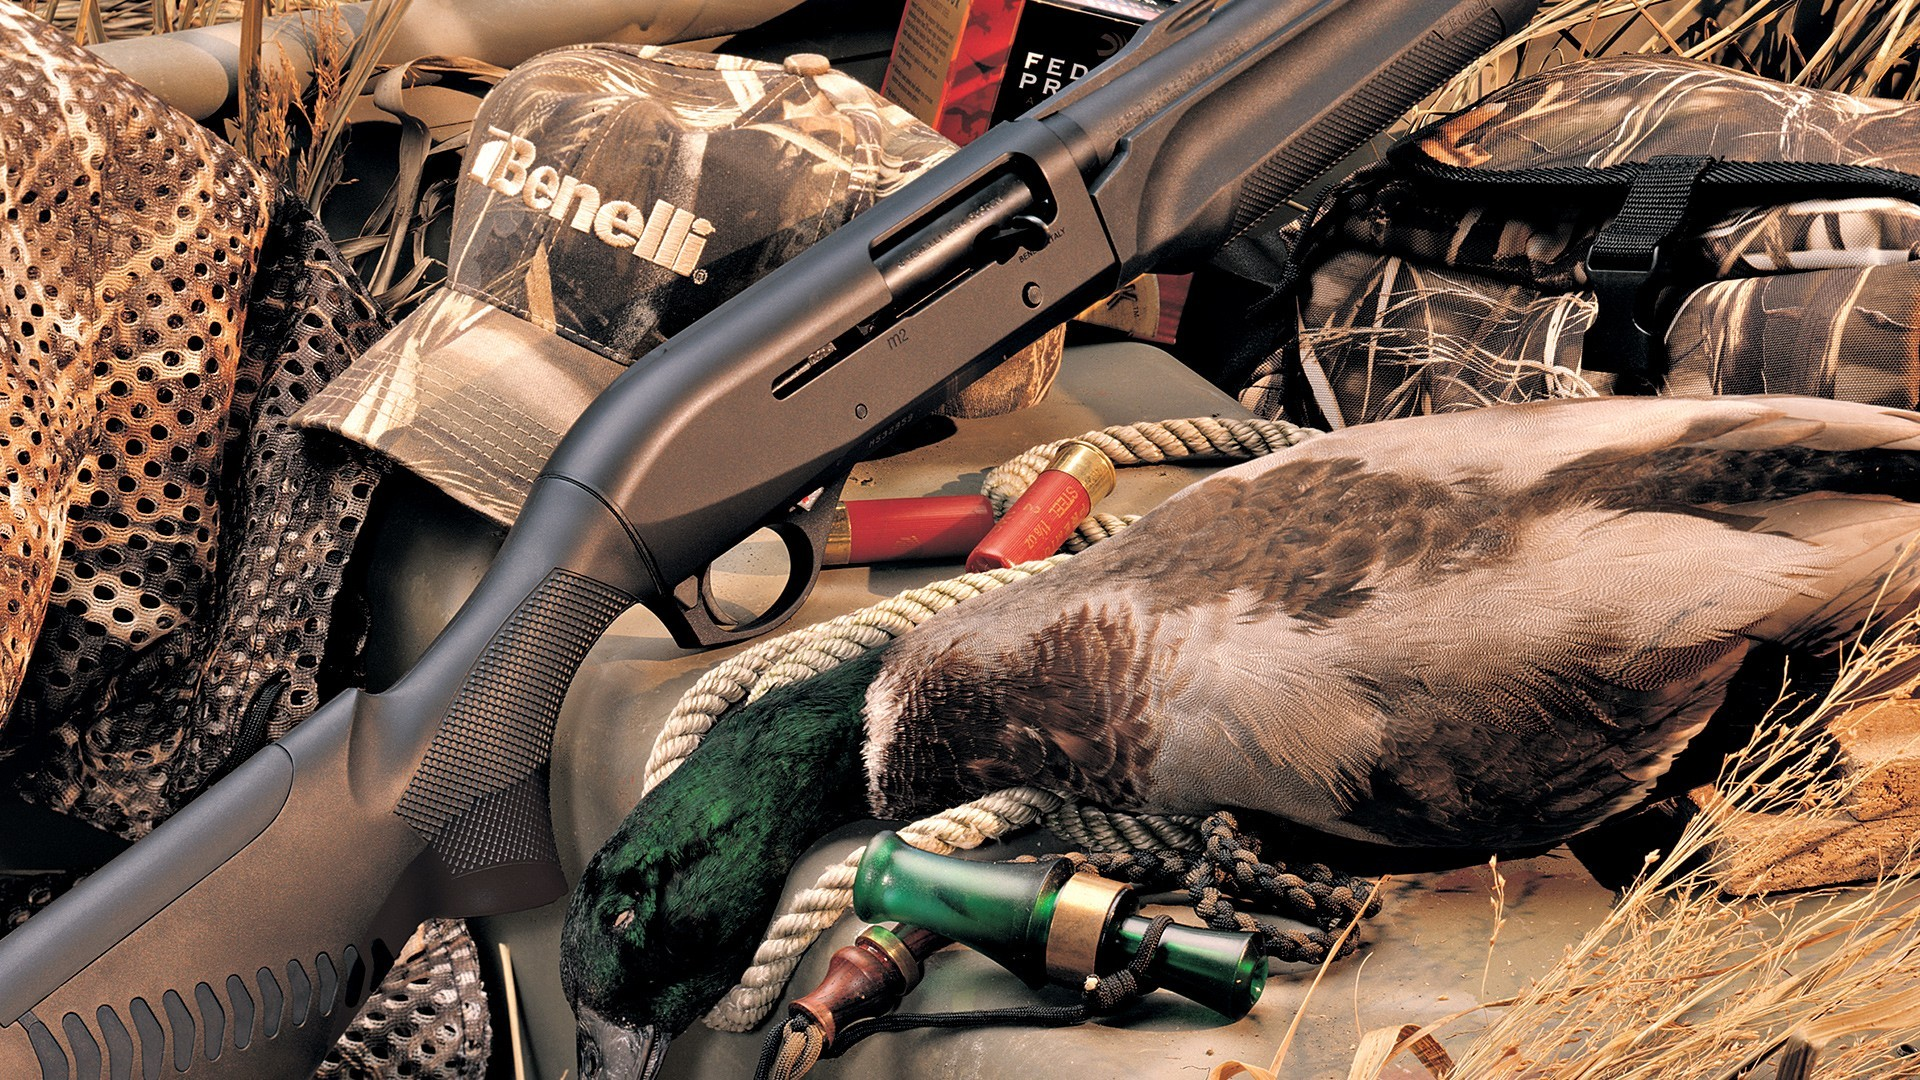 Benelli M2 Full HD Wallpaper And Background Image